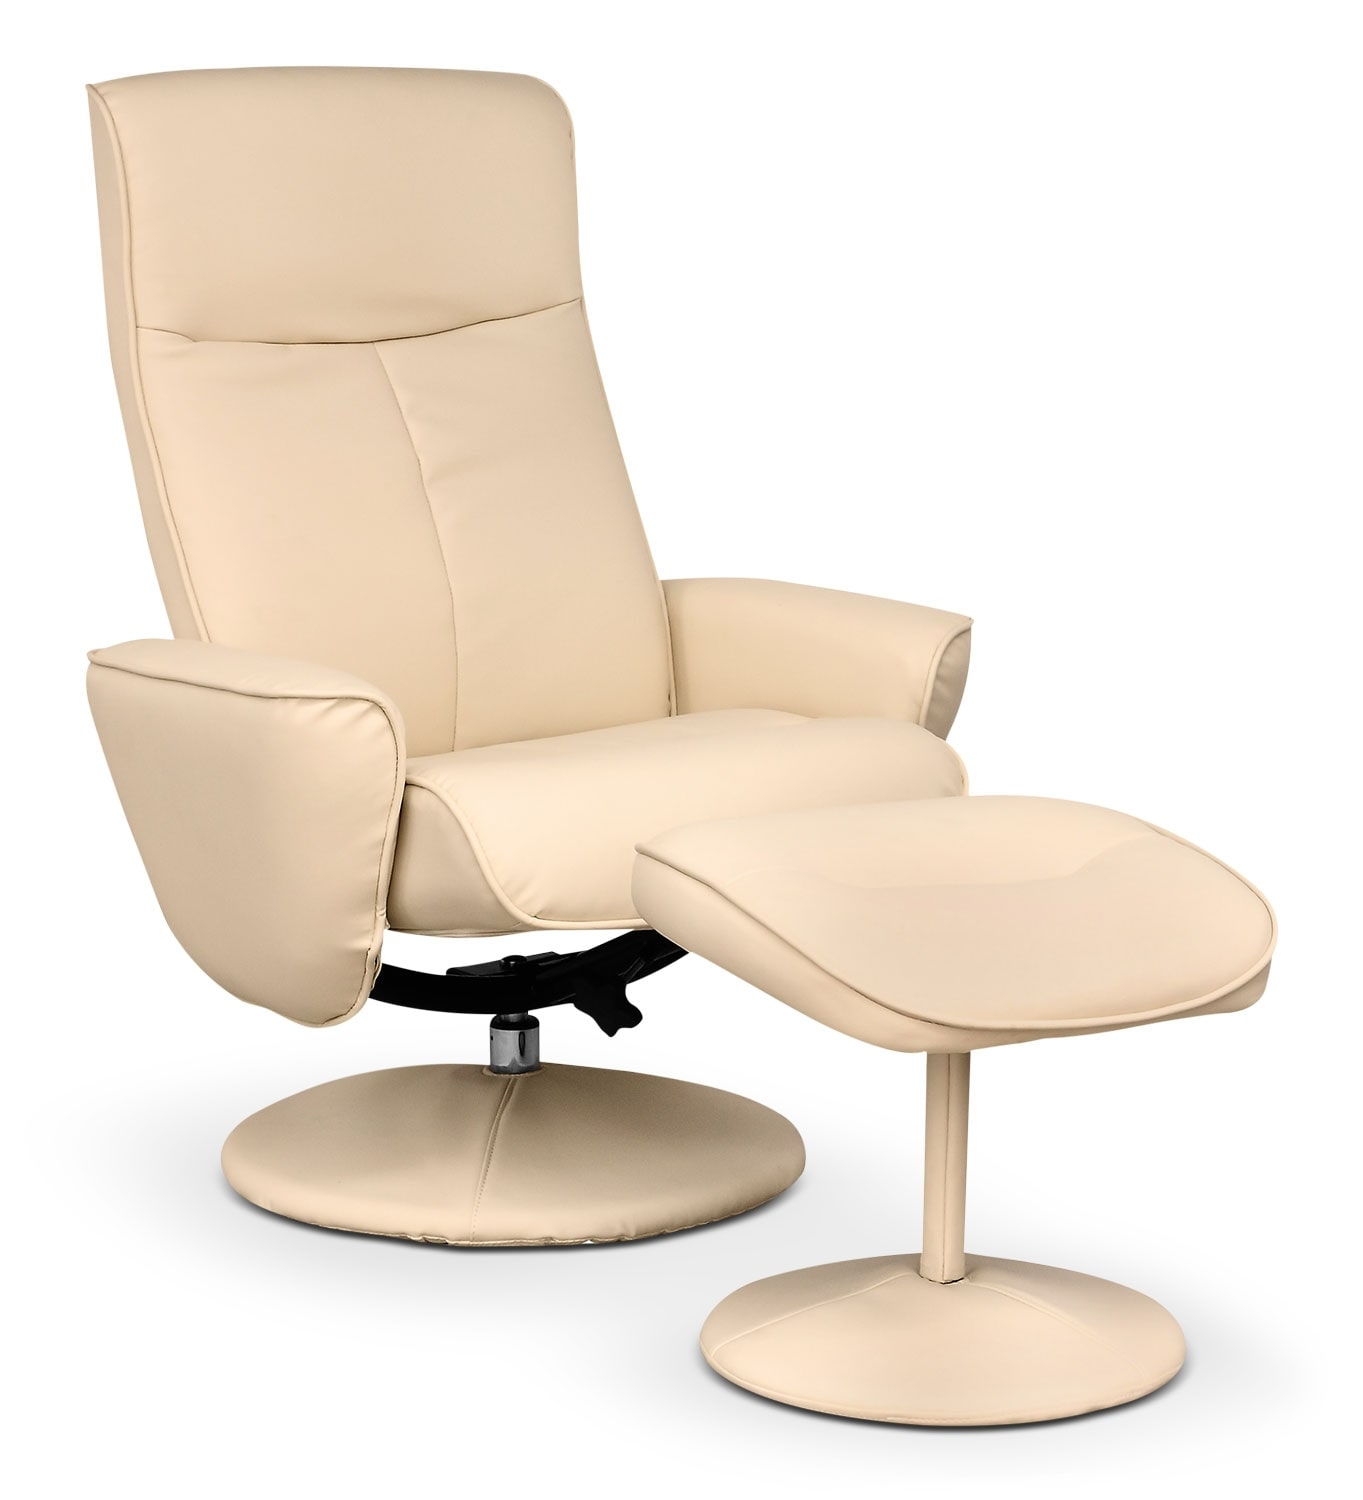 LYT Faux Leather Swivel Reclining Chair – Ivory Cream